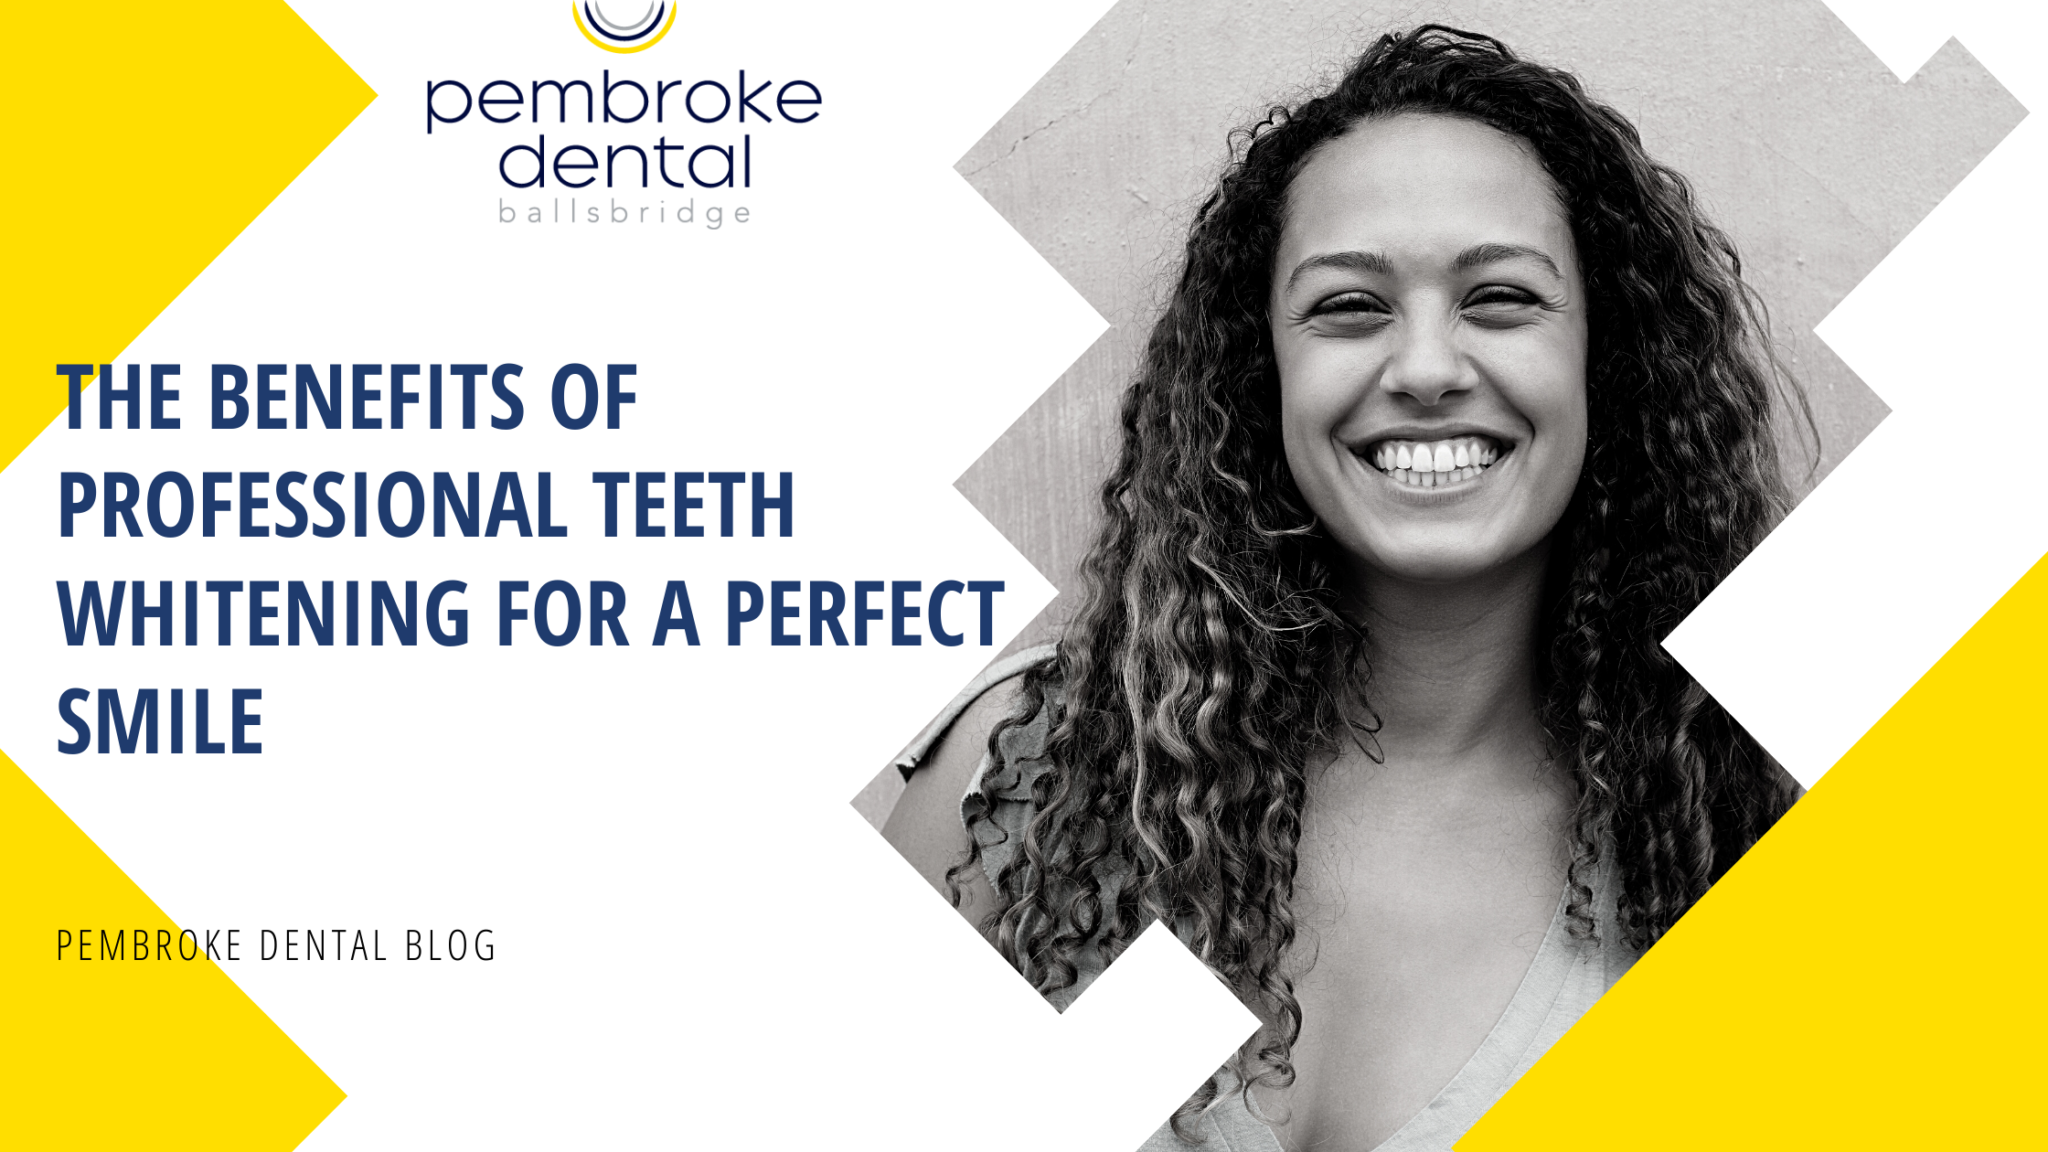 The Benefits of Professional Teeth Whitening for a Perfect Smile